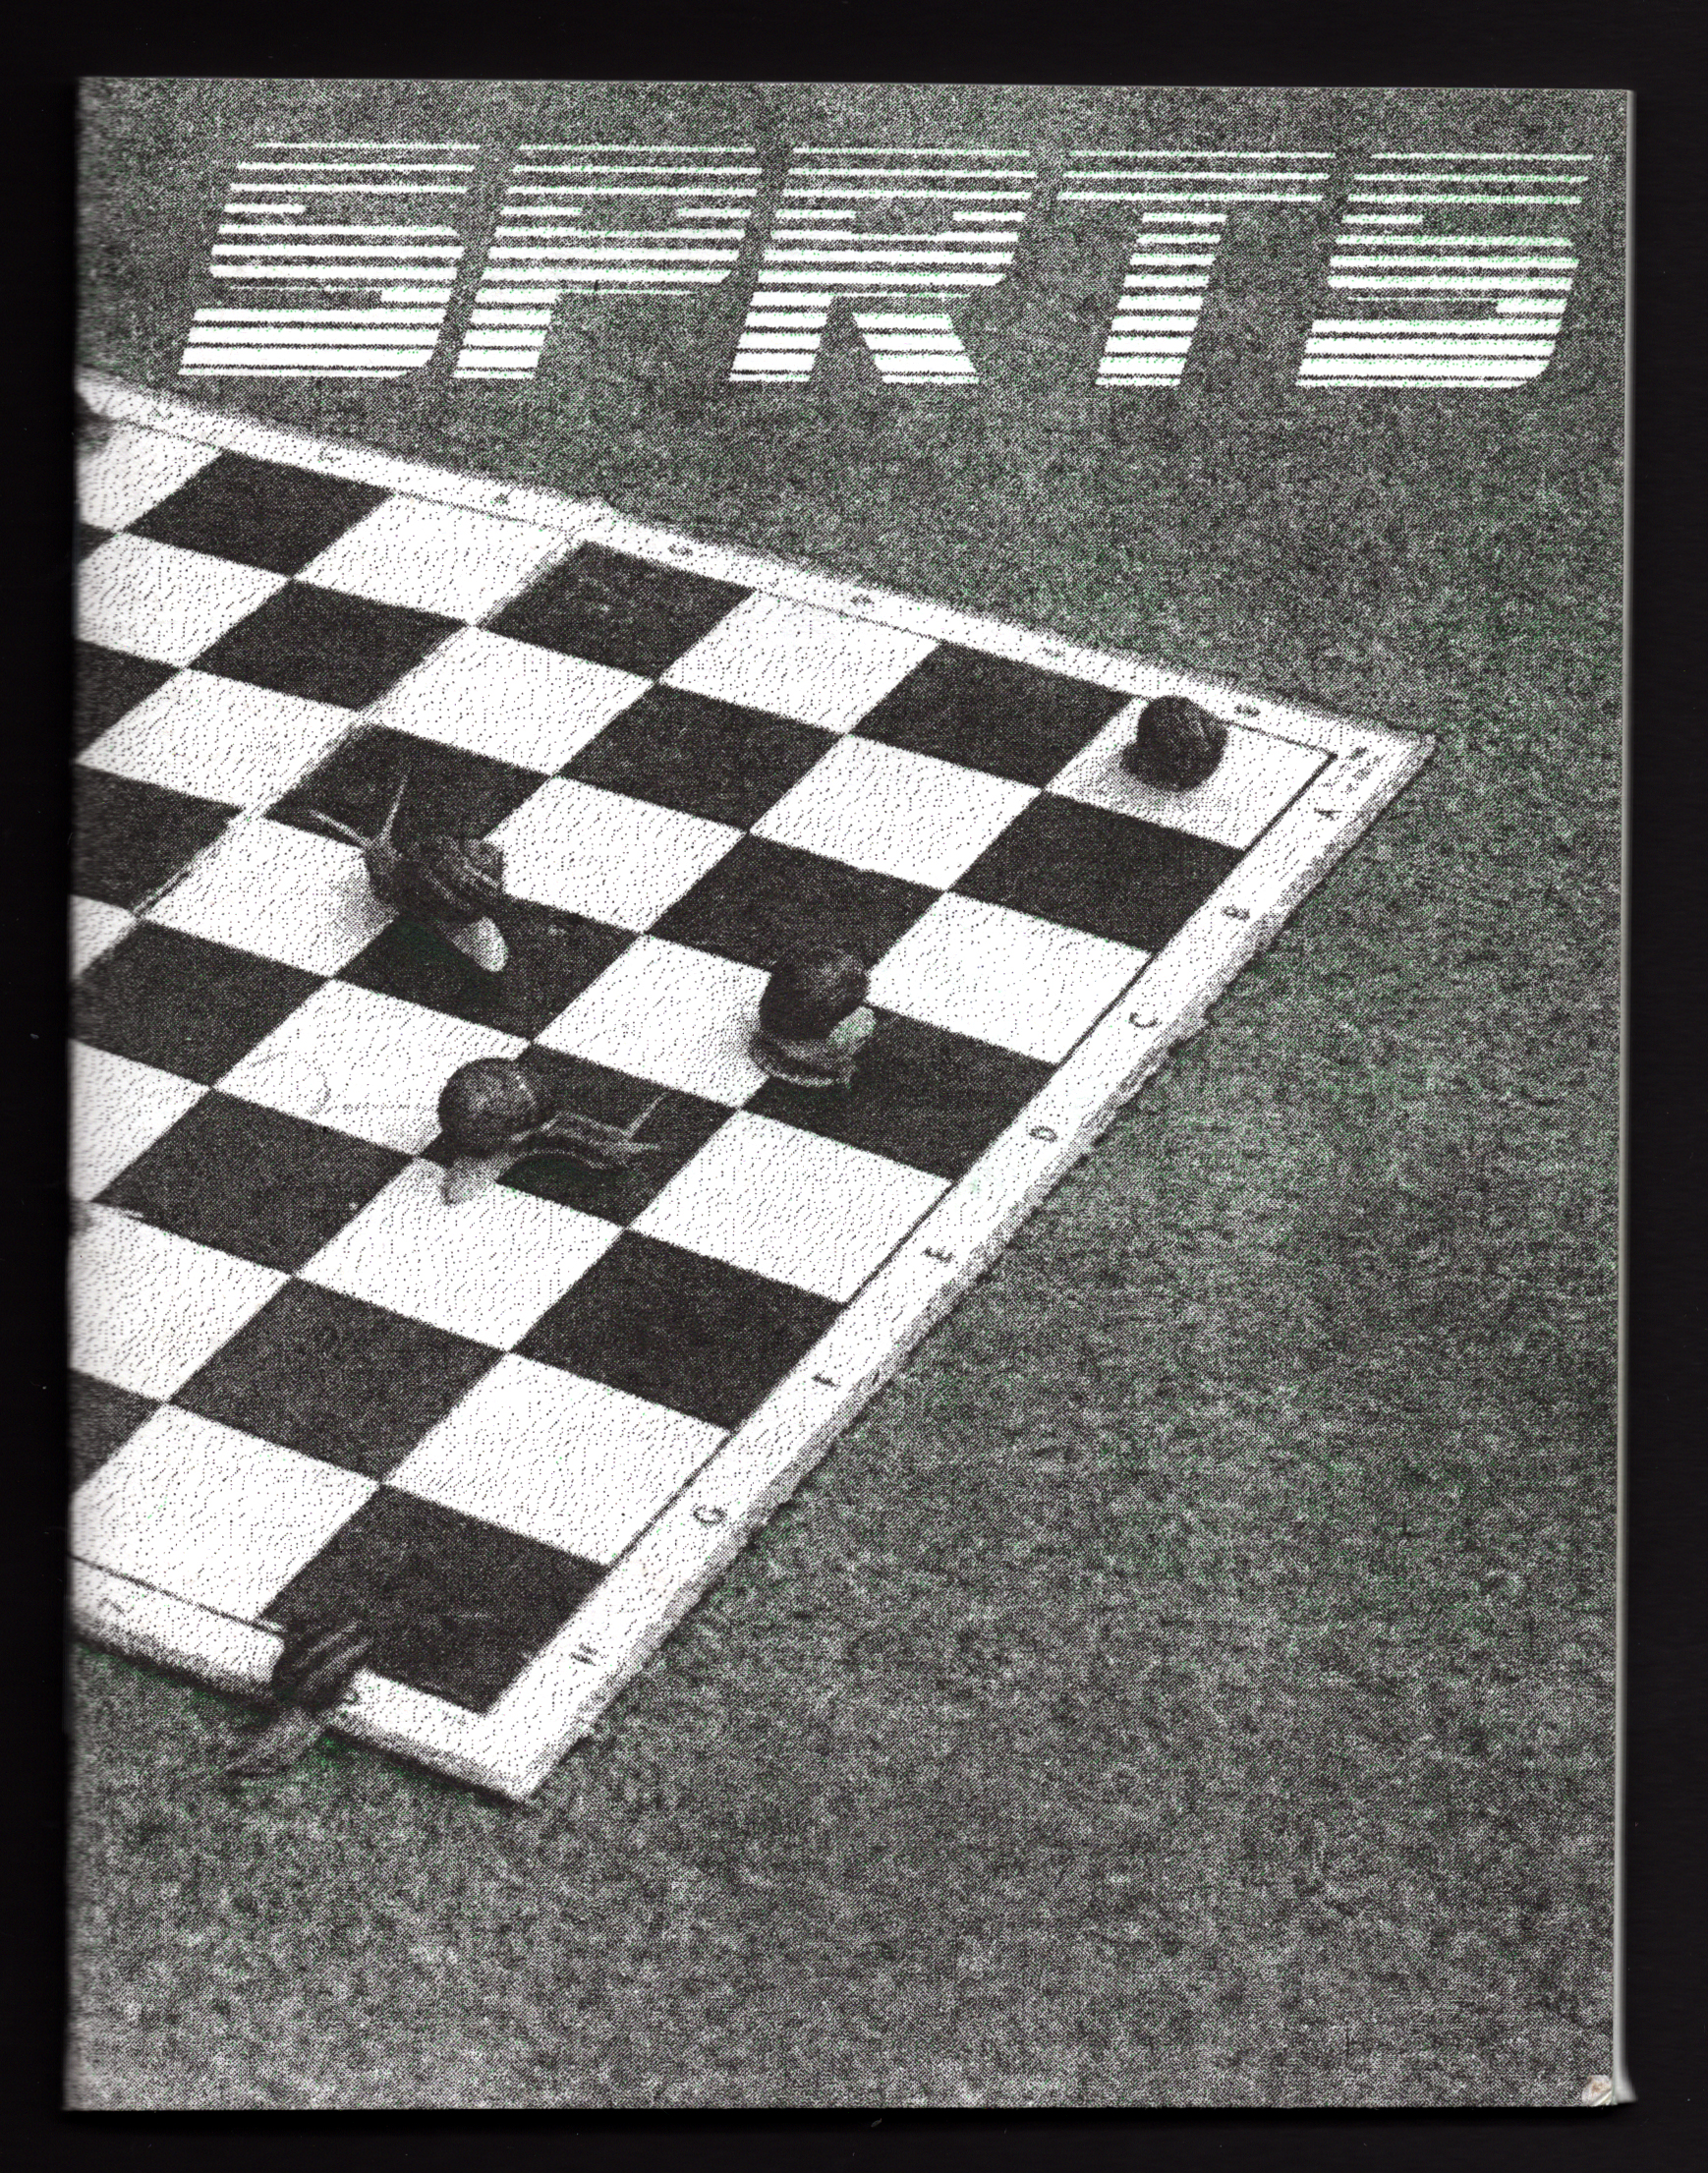 Endless Editions SPRTS SPCL EDN 3 (CHESS)